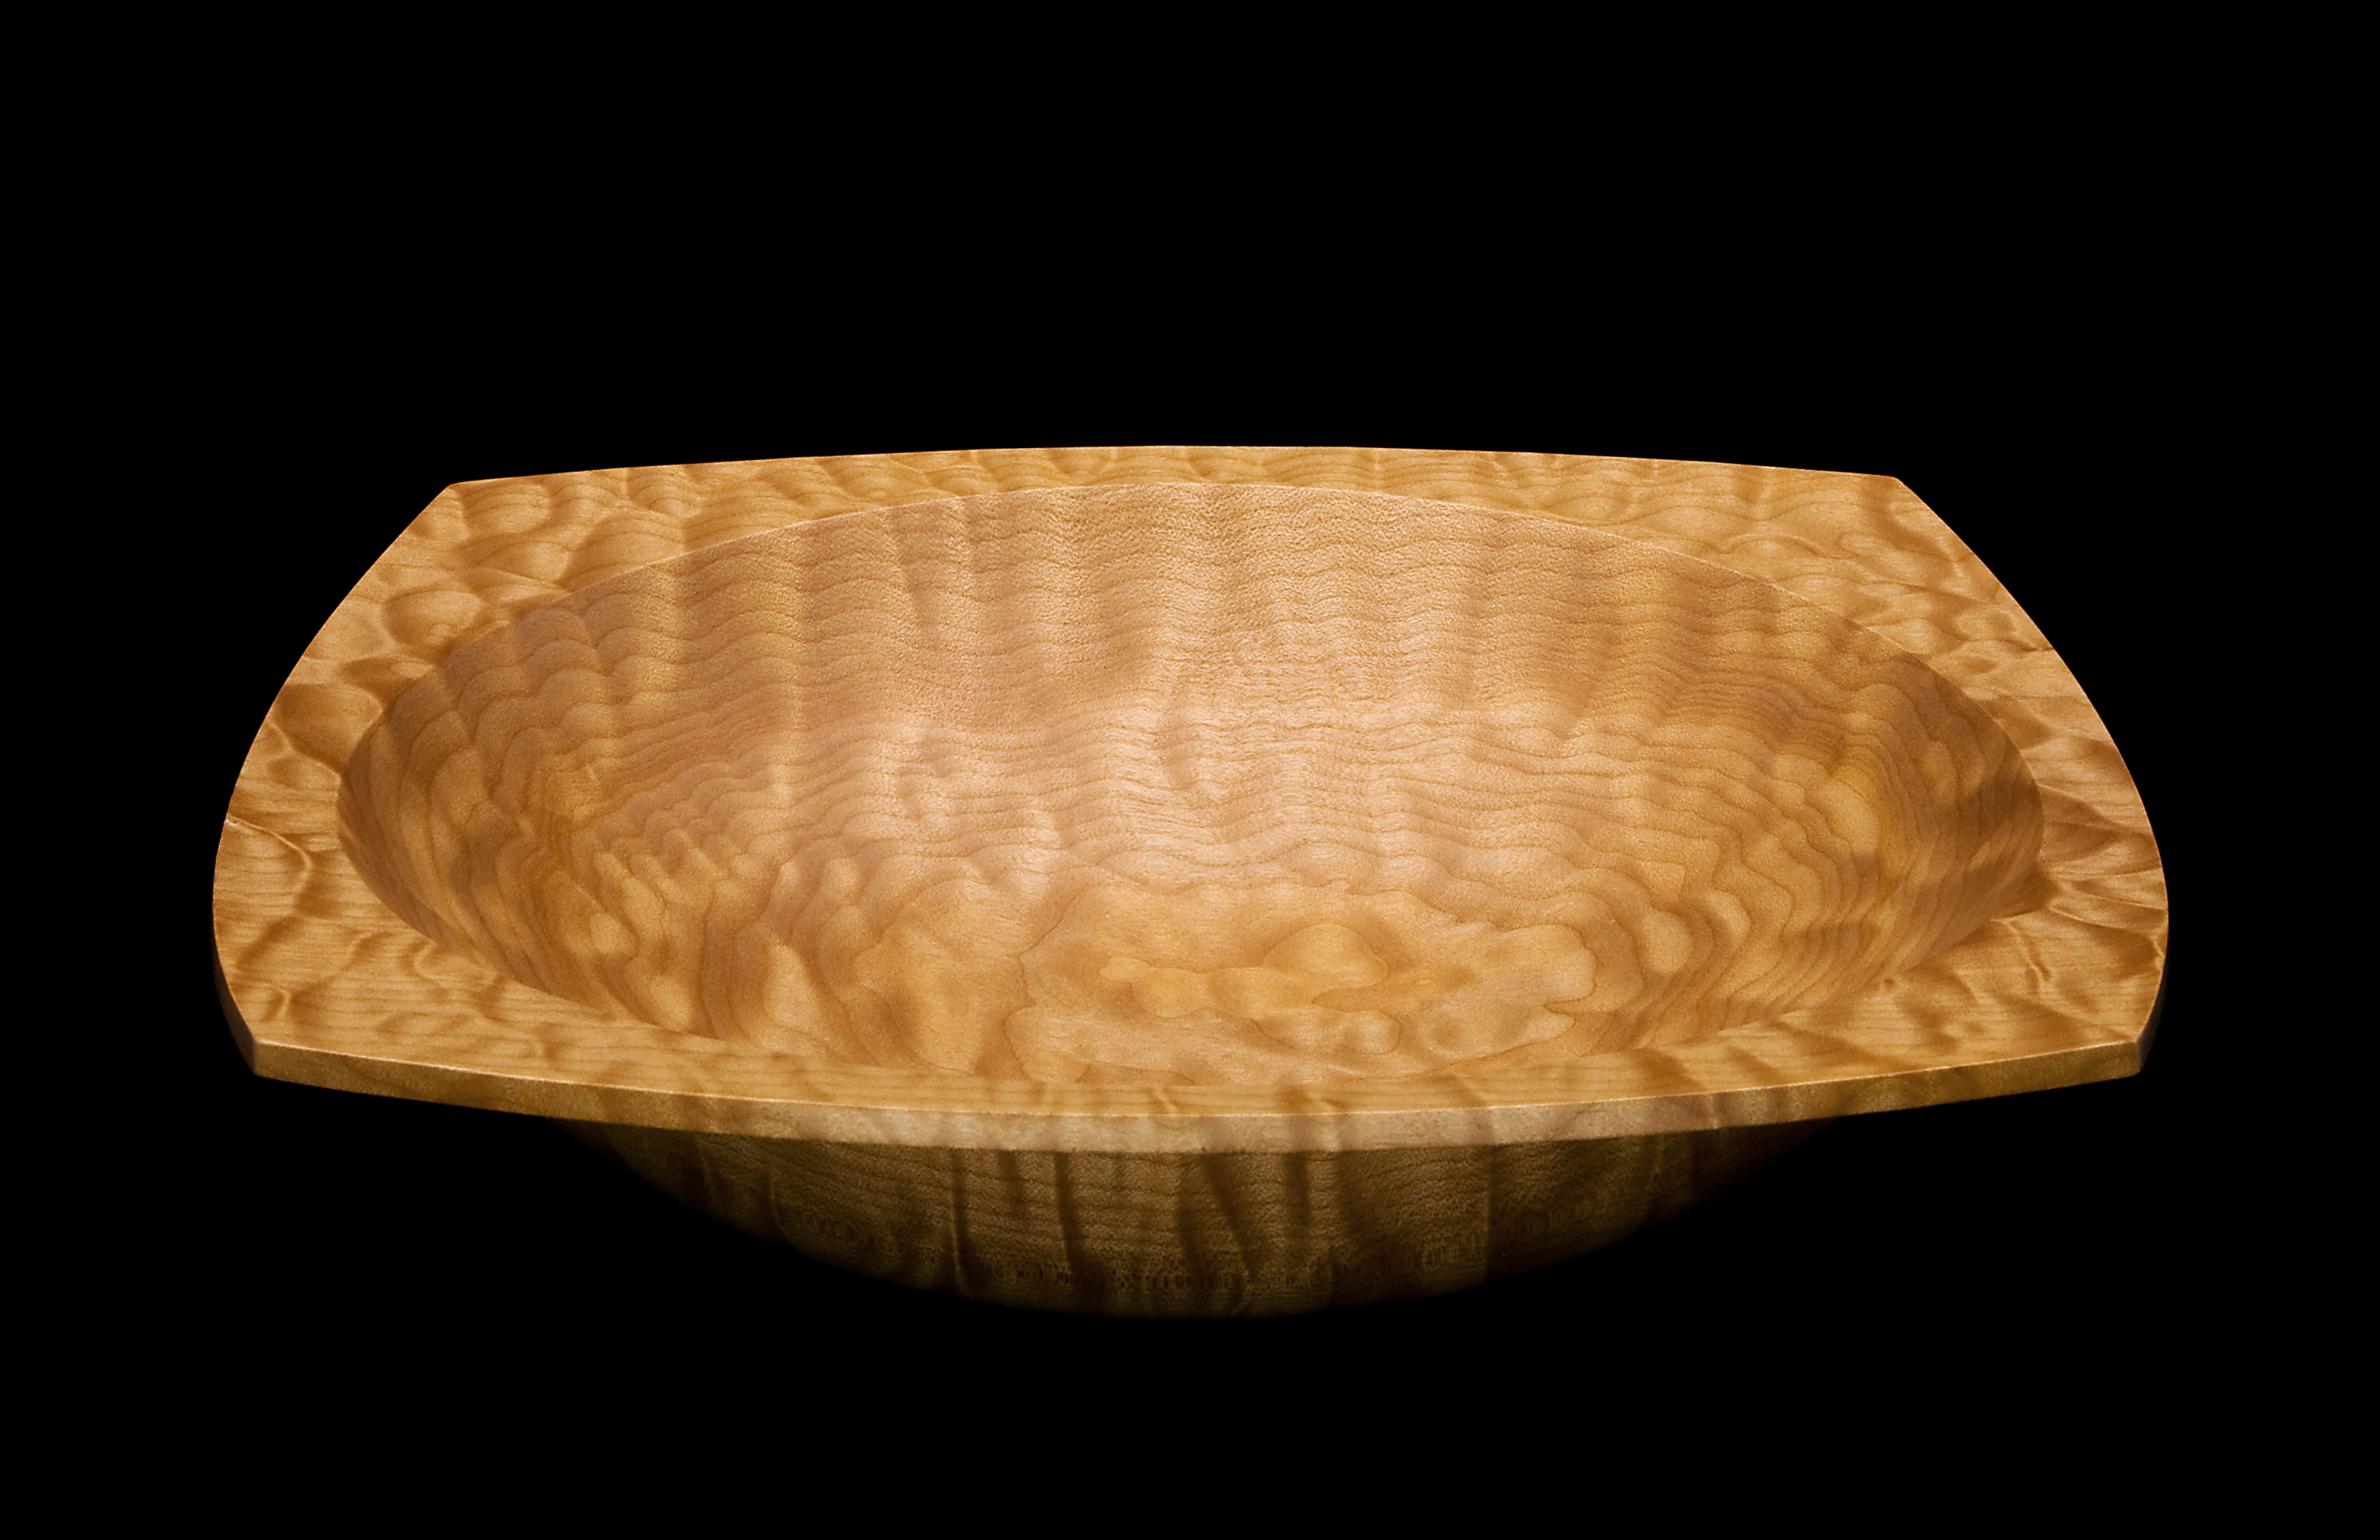 Quilted Maple Bowl